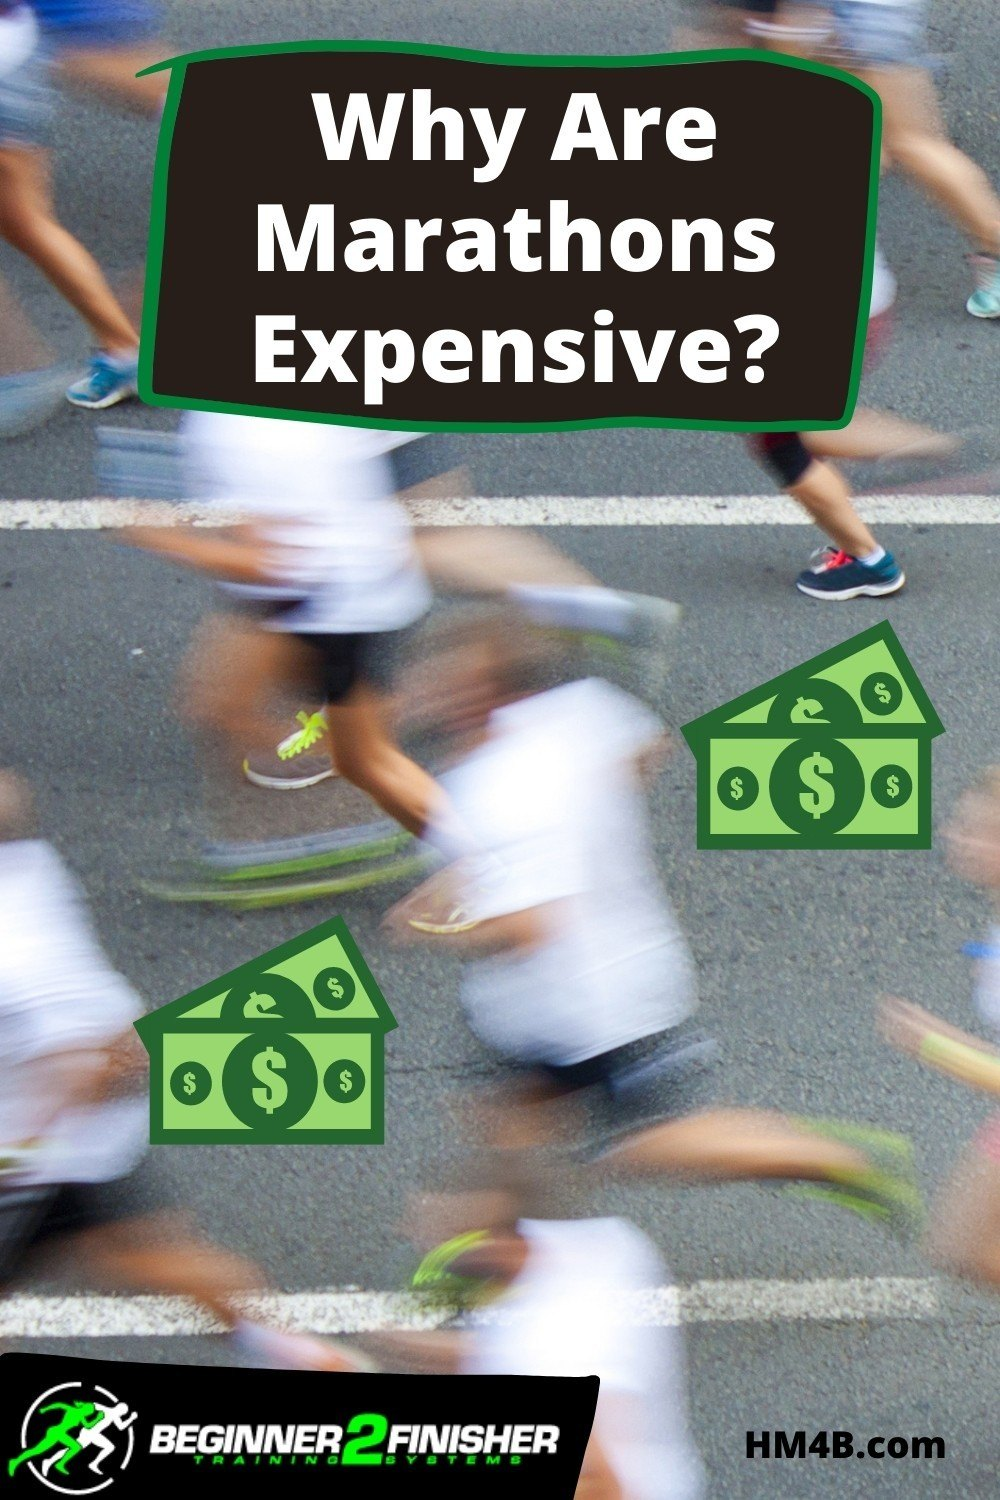 Why Are Marathons So Expensive?